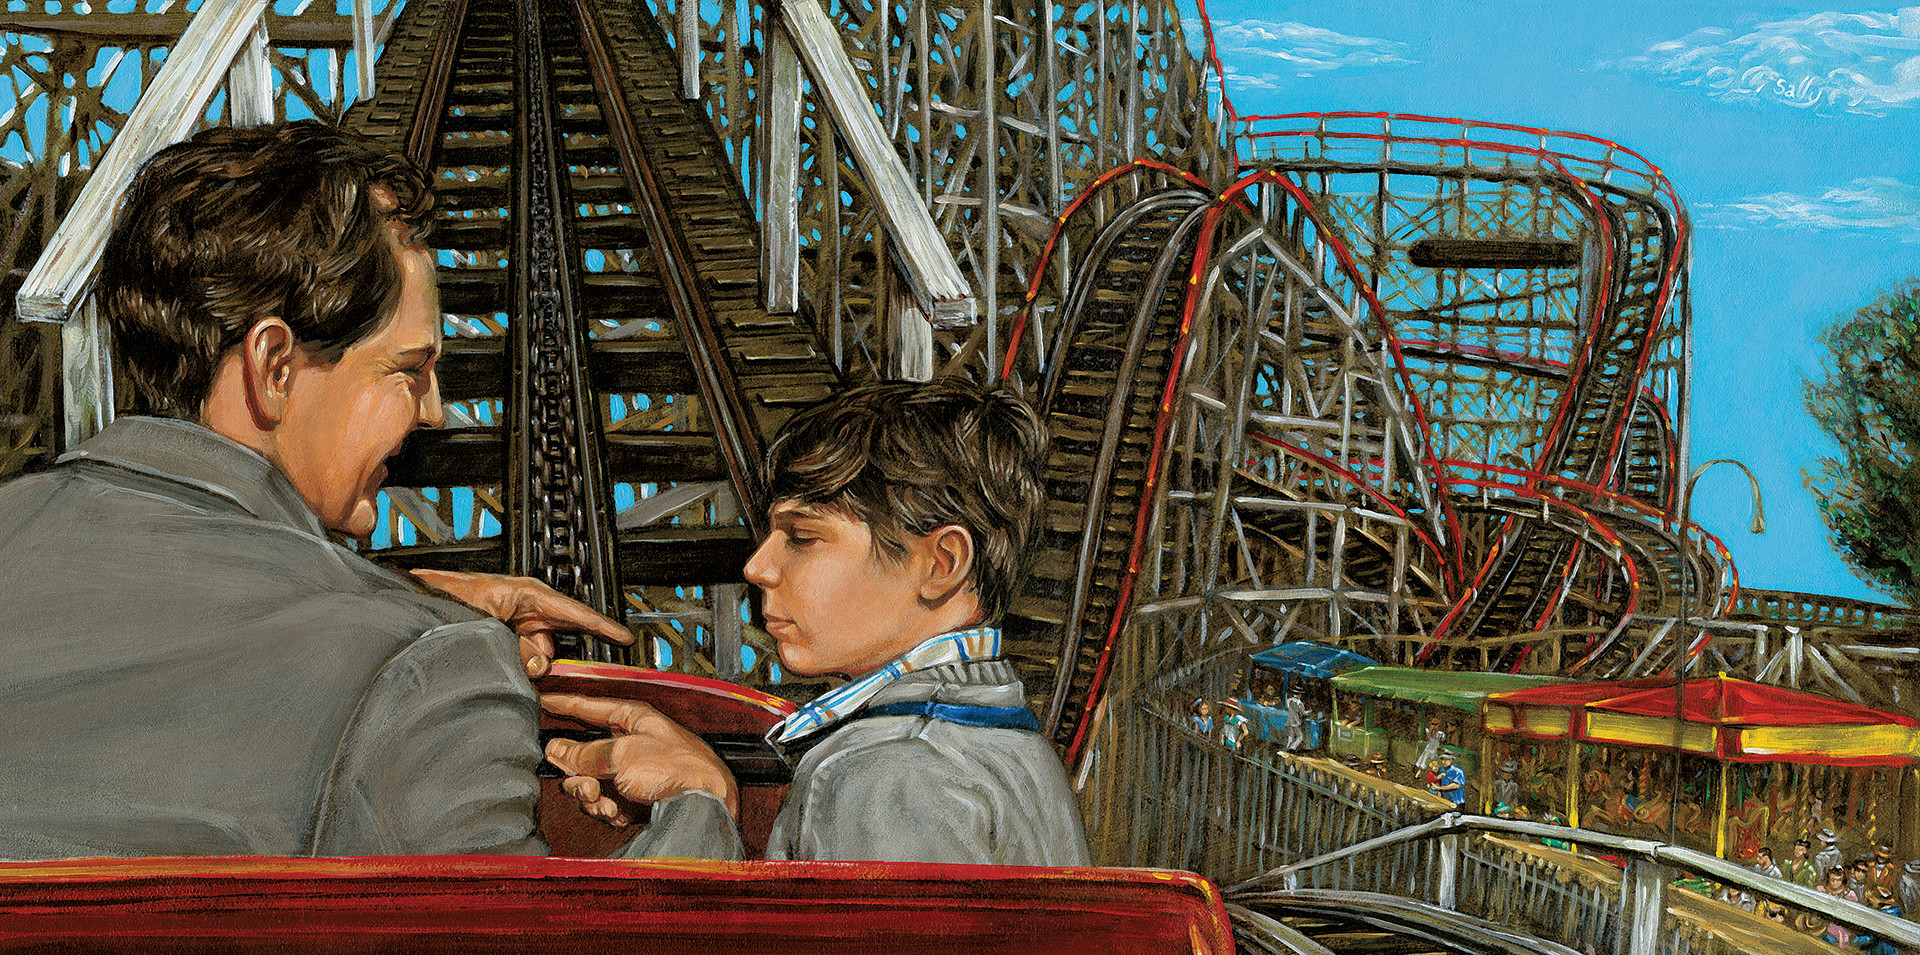 Father and Son Ascending The Coaster